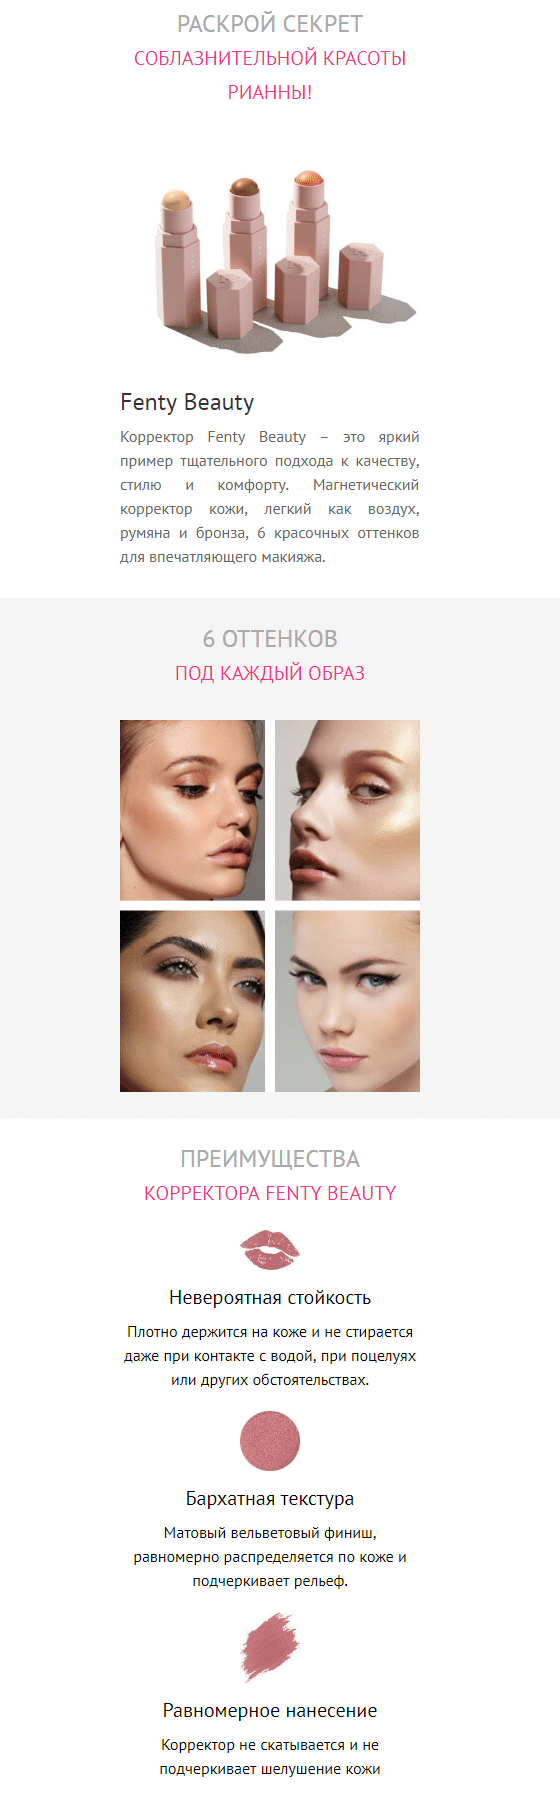 Корректор Fenty Beauty купить